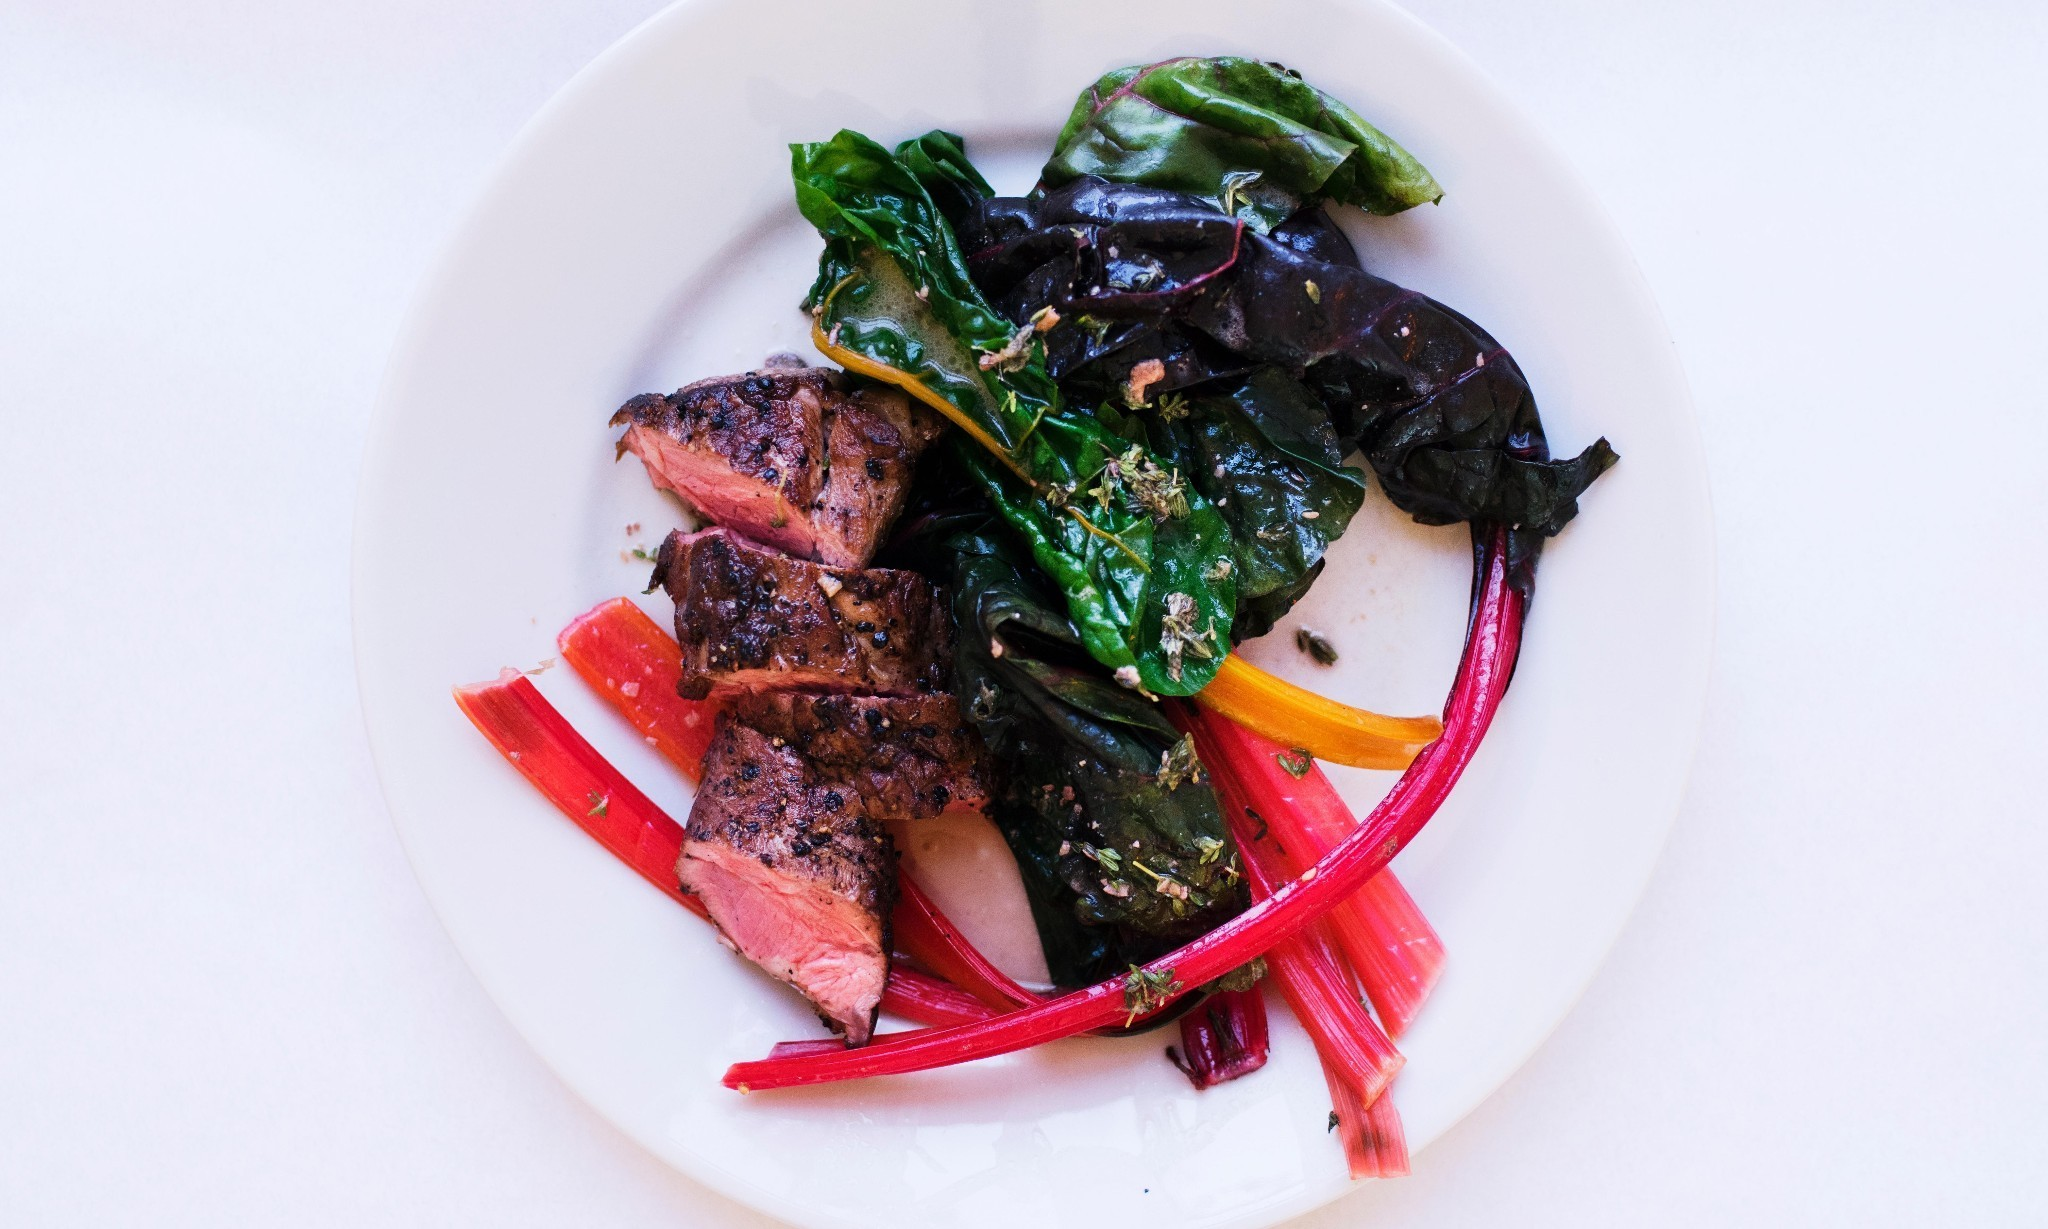 Nigel Slater's roast lamb with anchovy butter recipe